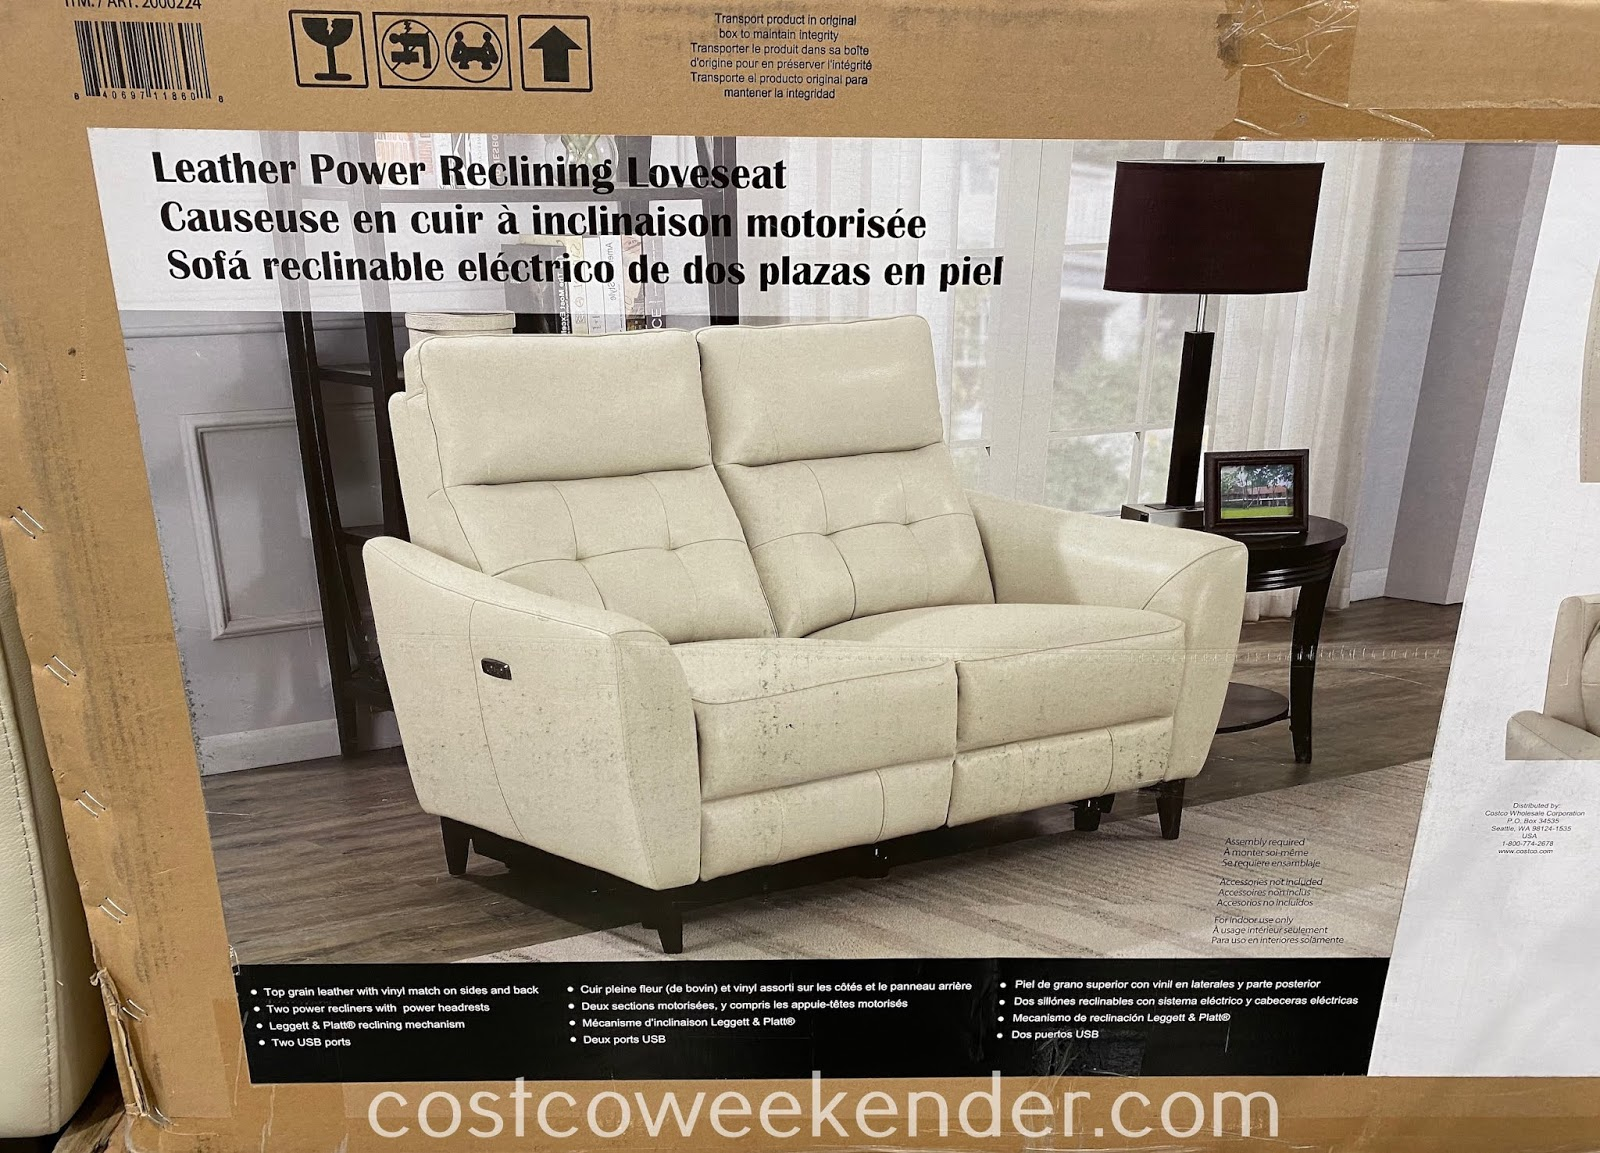 Costco 2000224 - Leather Power Reclining Loveseat reclines for more comfort